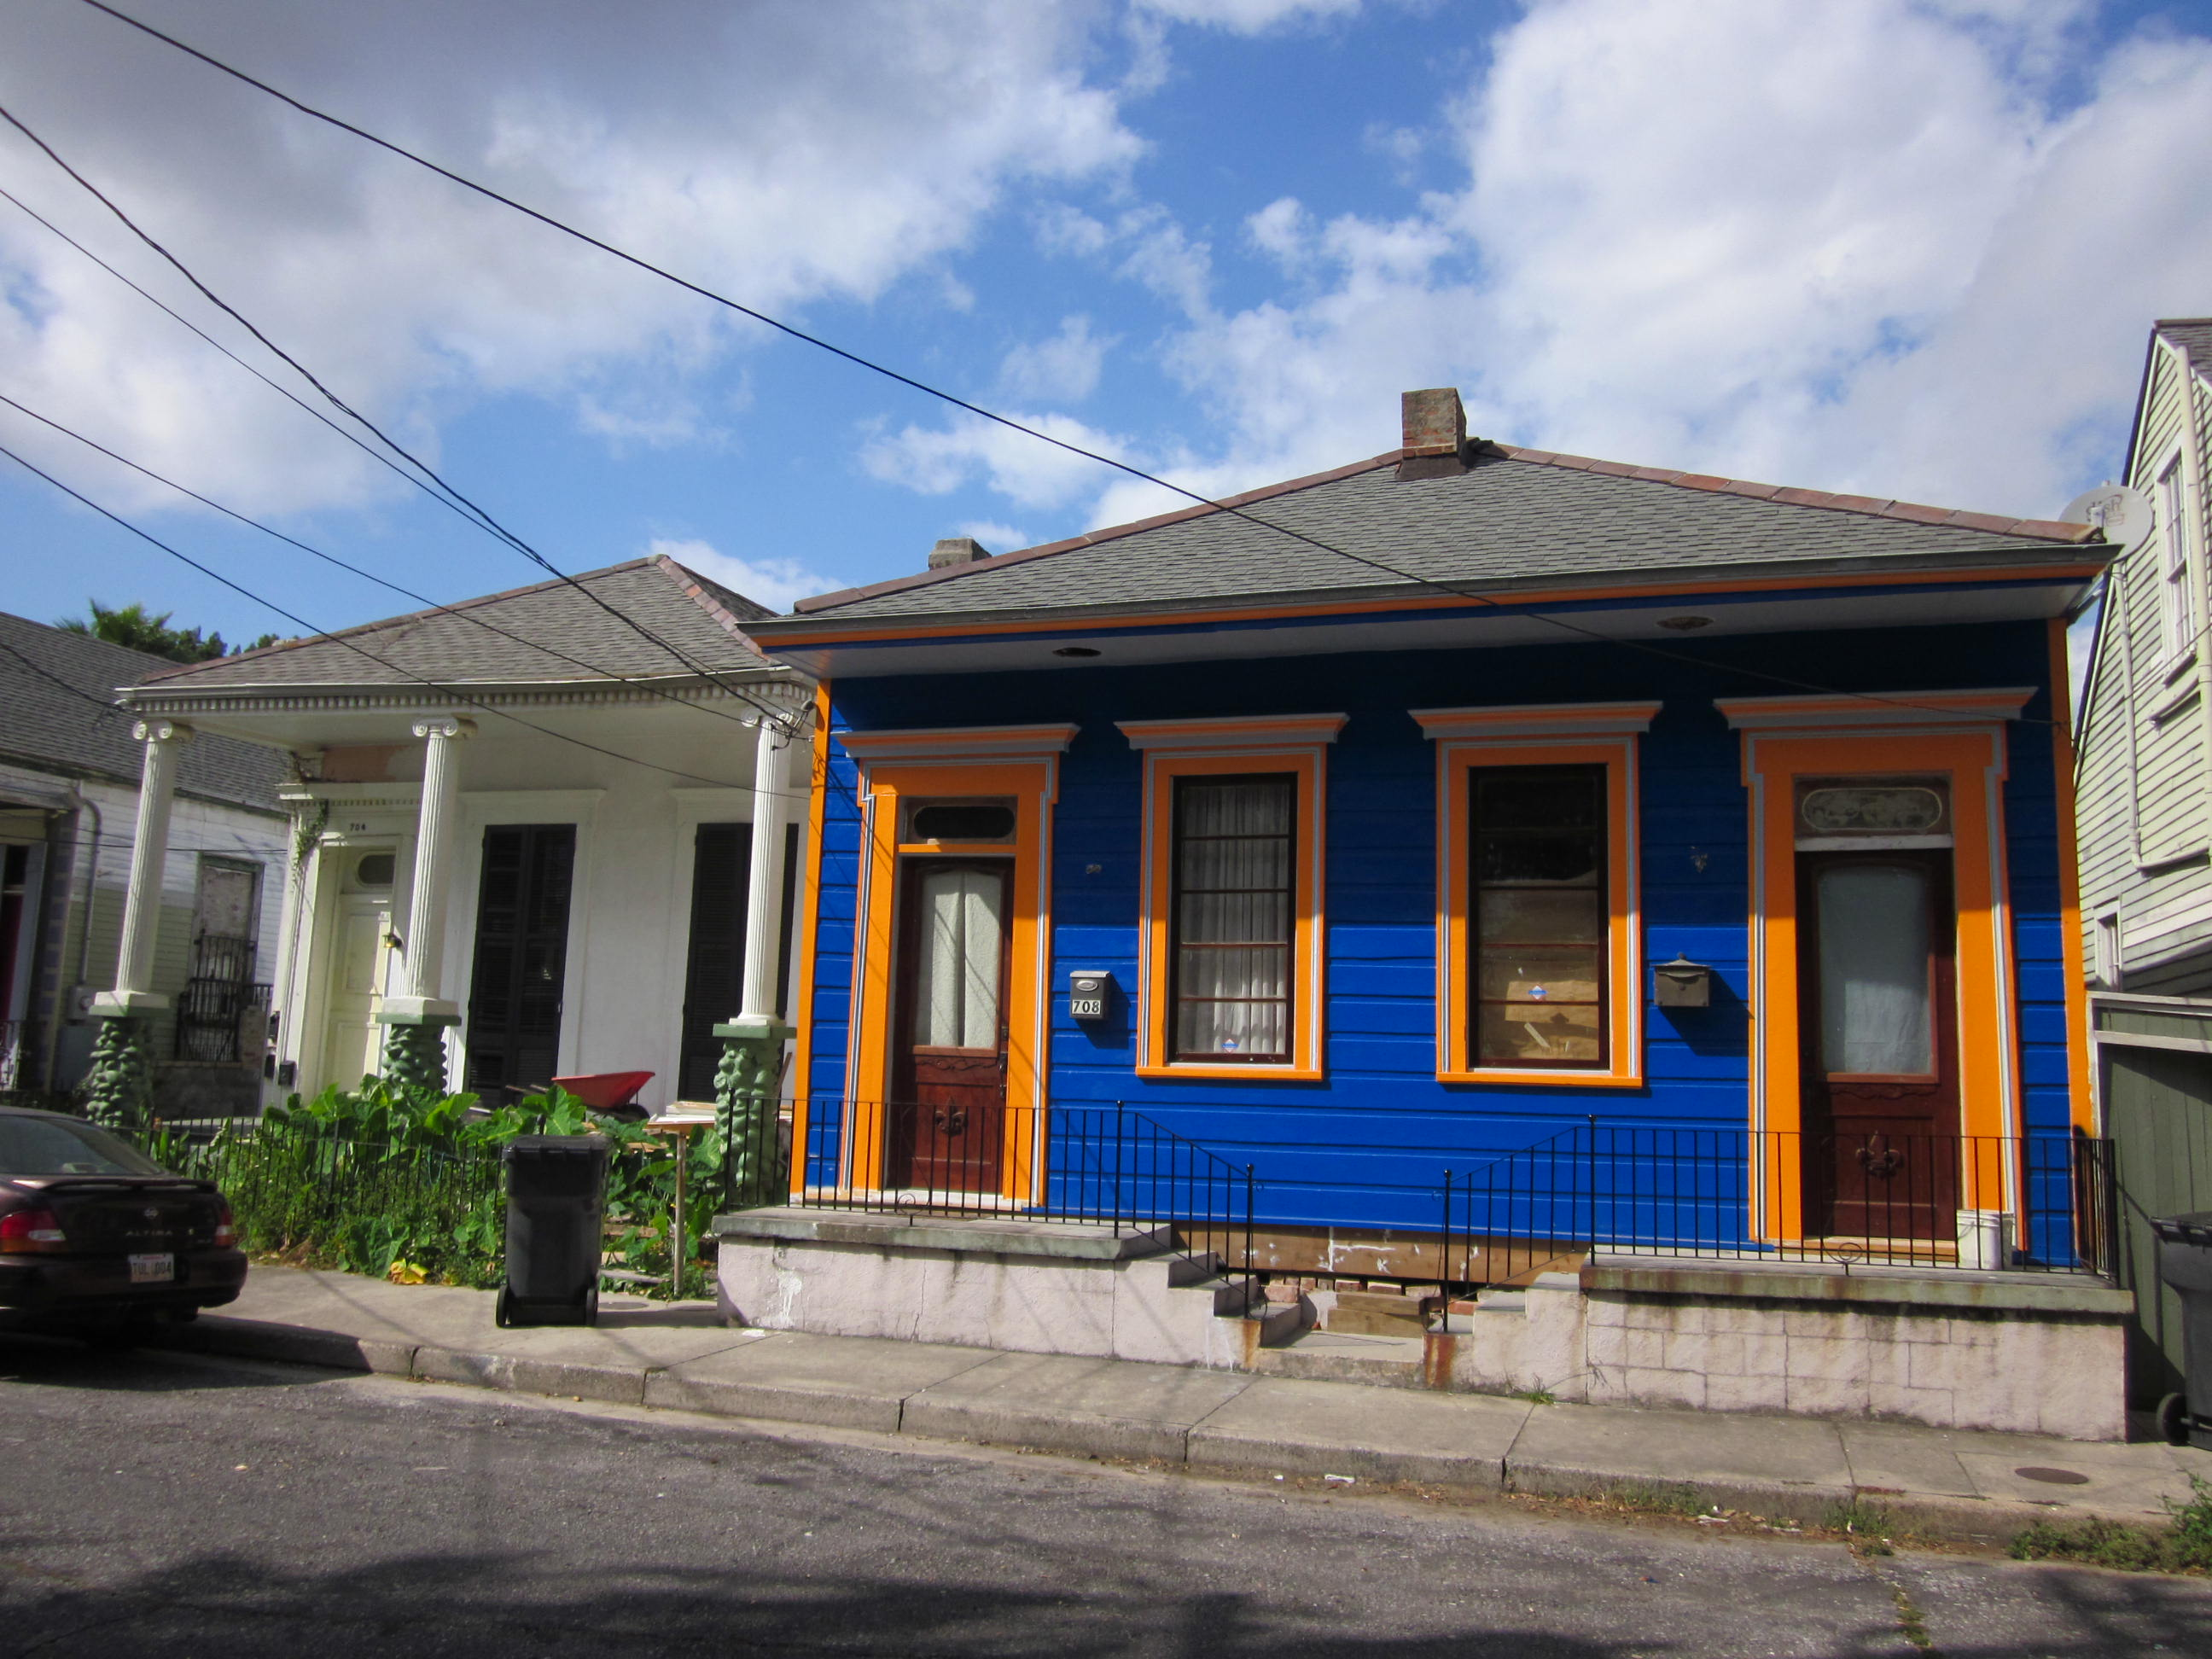 Colorful House file:piety bywater 700 block colorful house - wikimedia commons